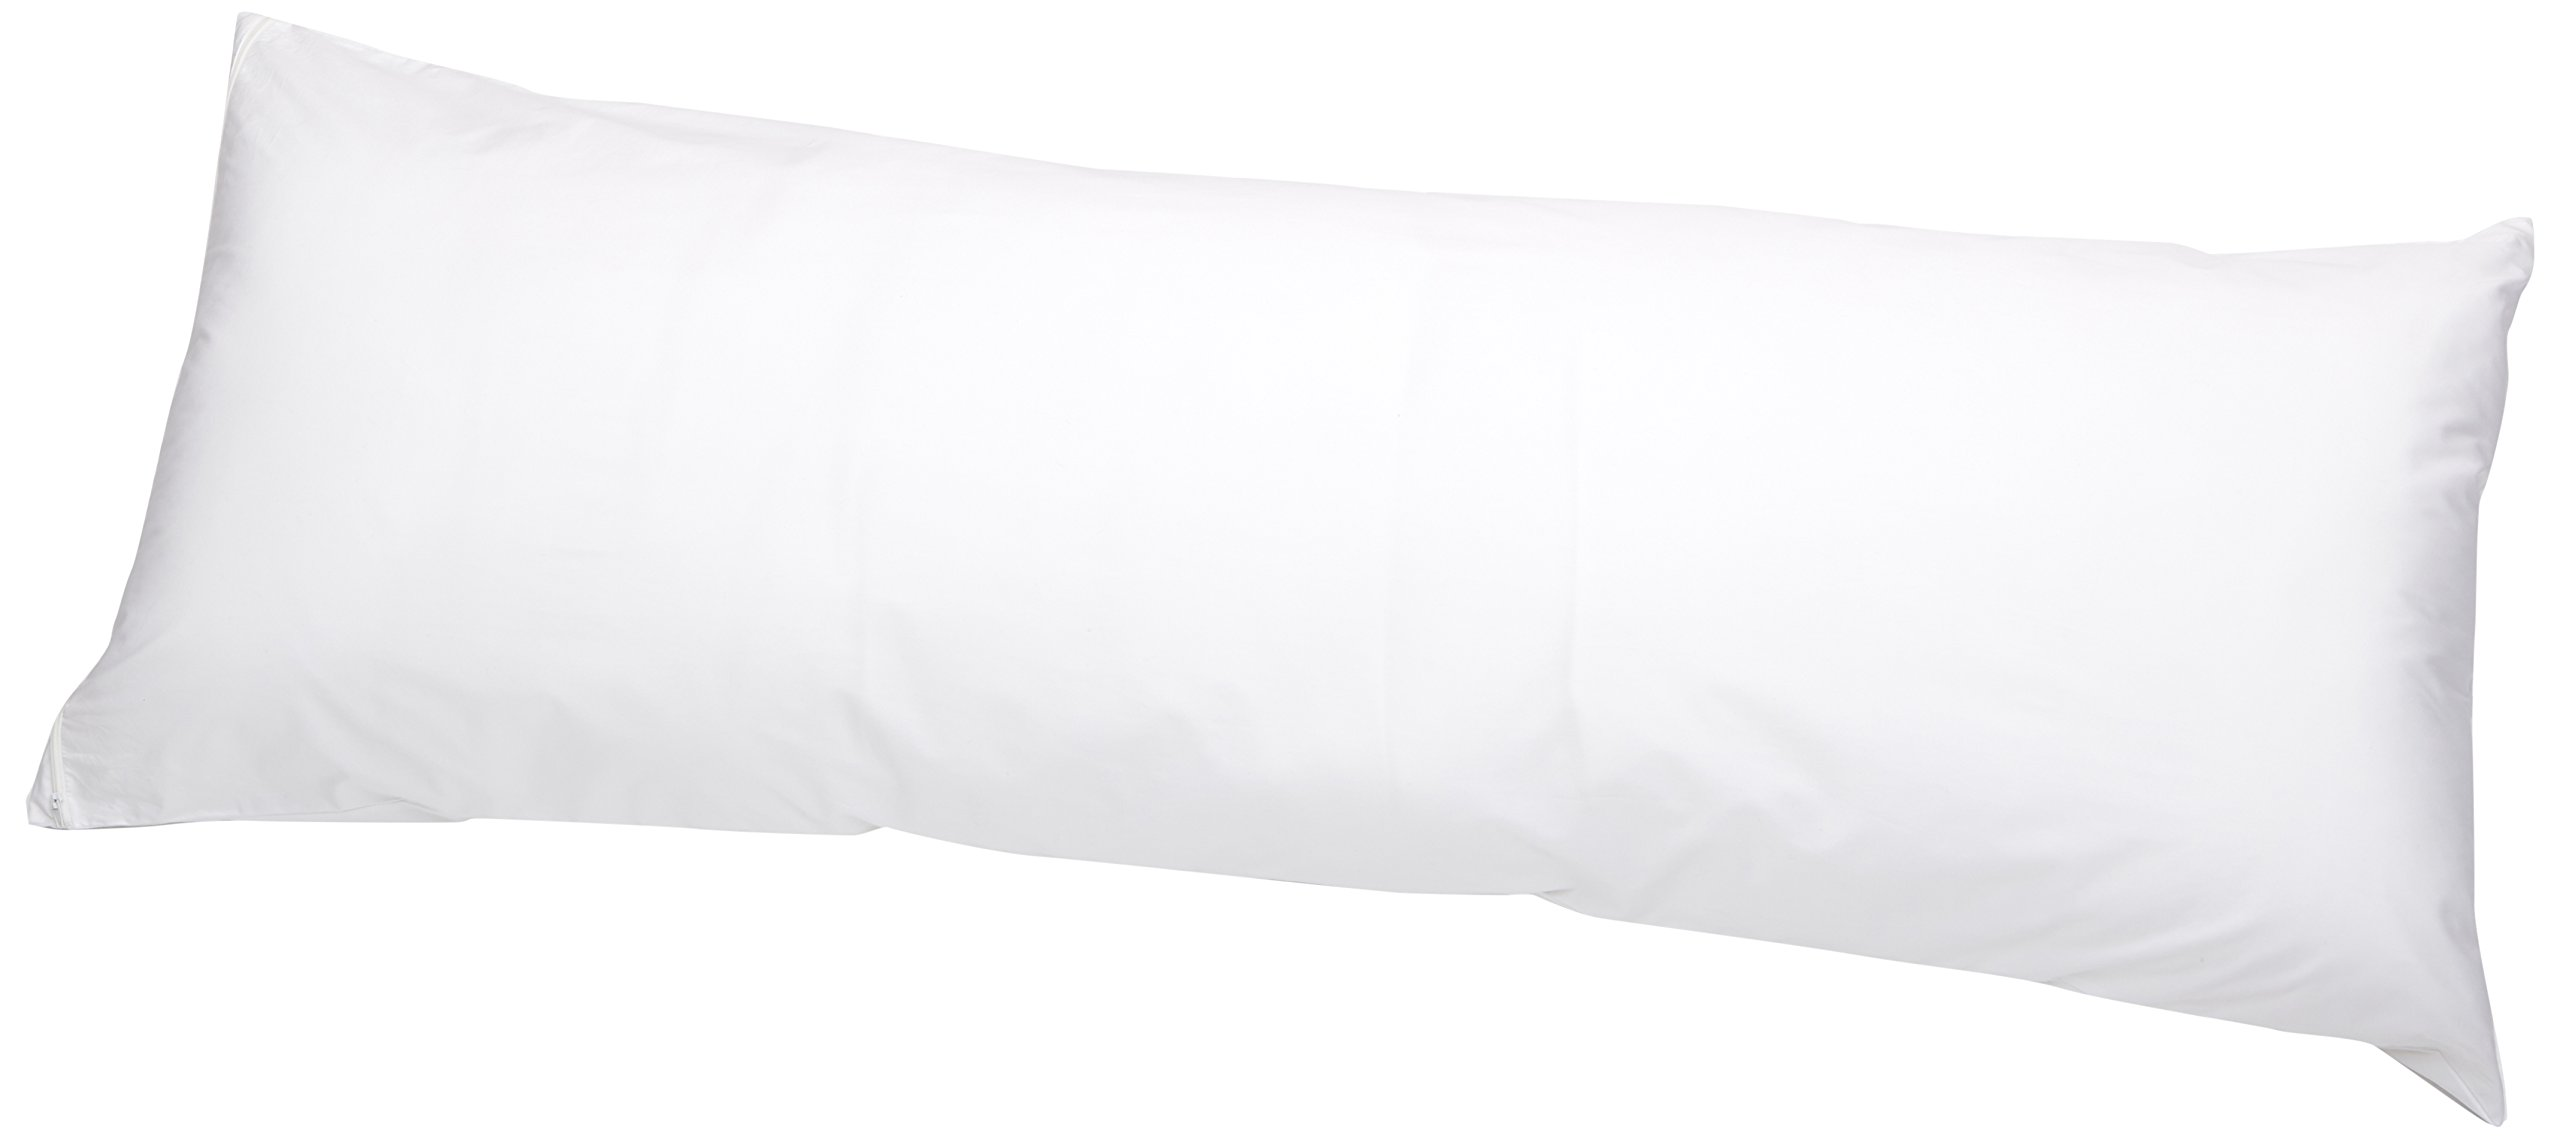 AmazonBasics Hypoallergenic Pillow Protector, White, Body